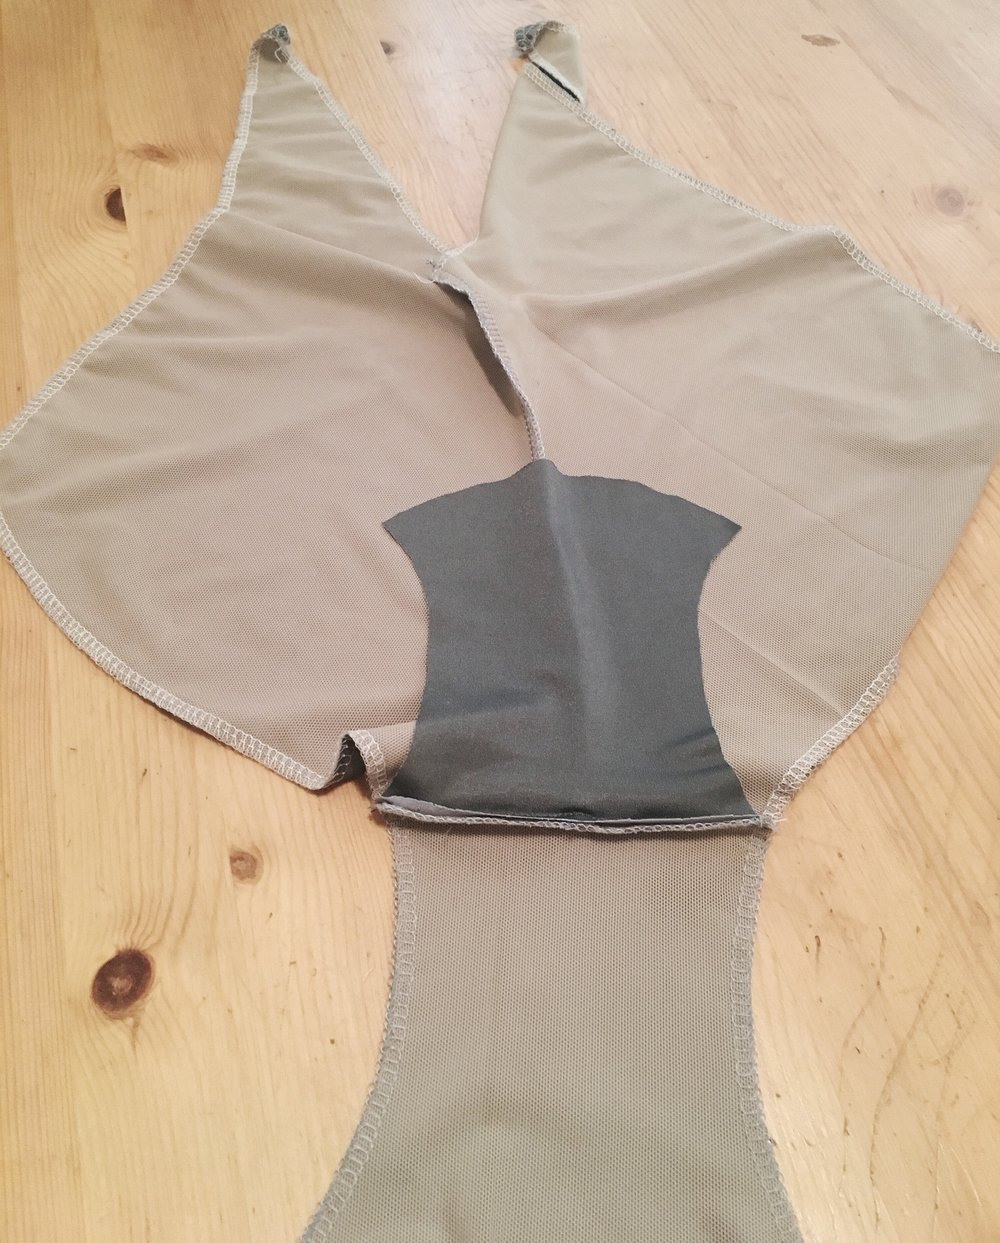 Crotch lining is attached only to one side- at the crotch seam.  The sides are caught in the leg elastic and the other end stays open.